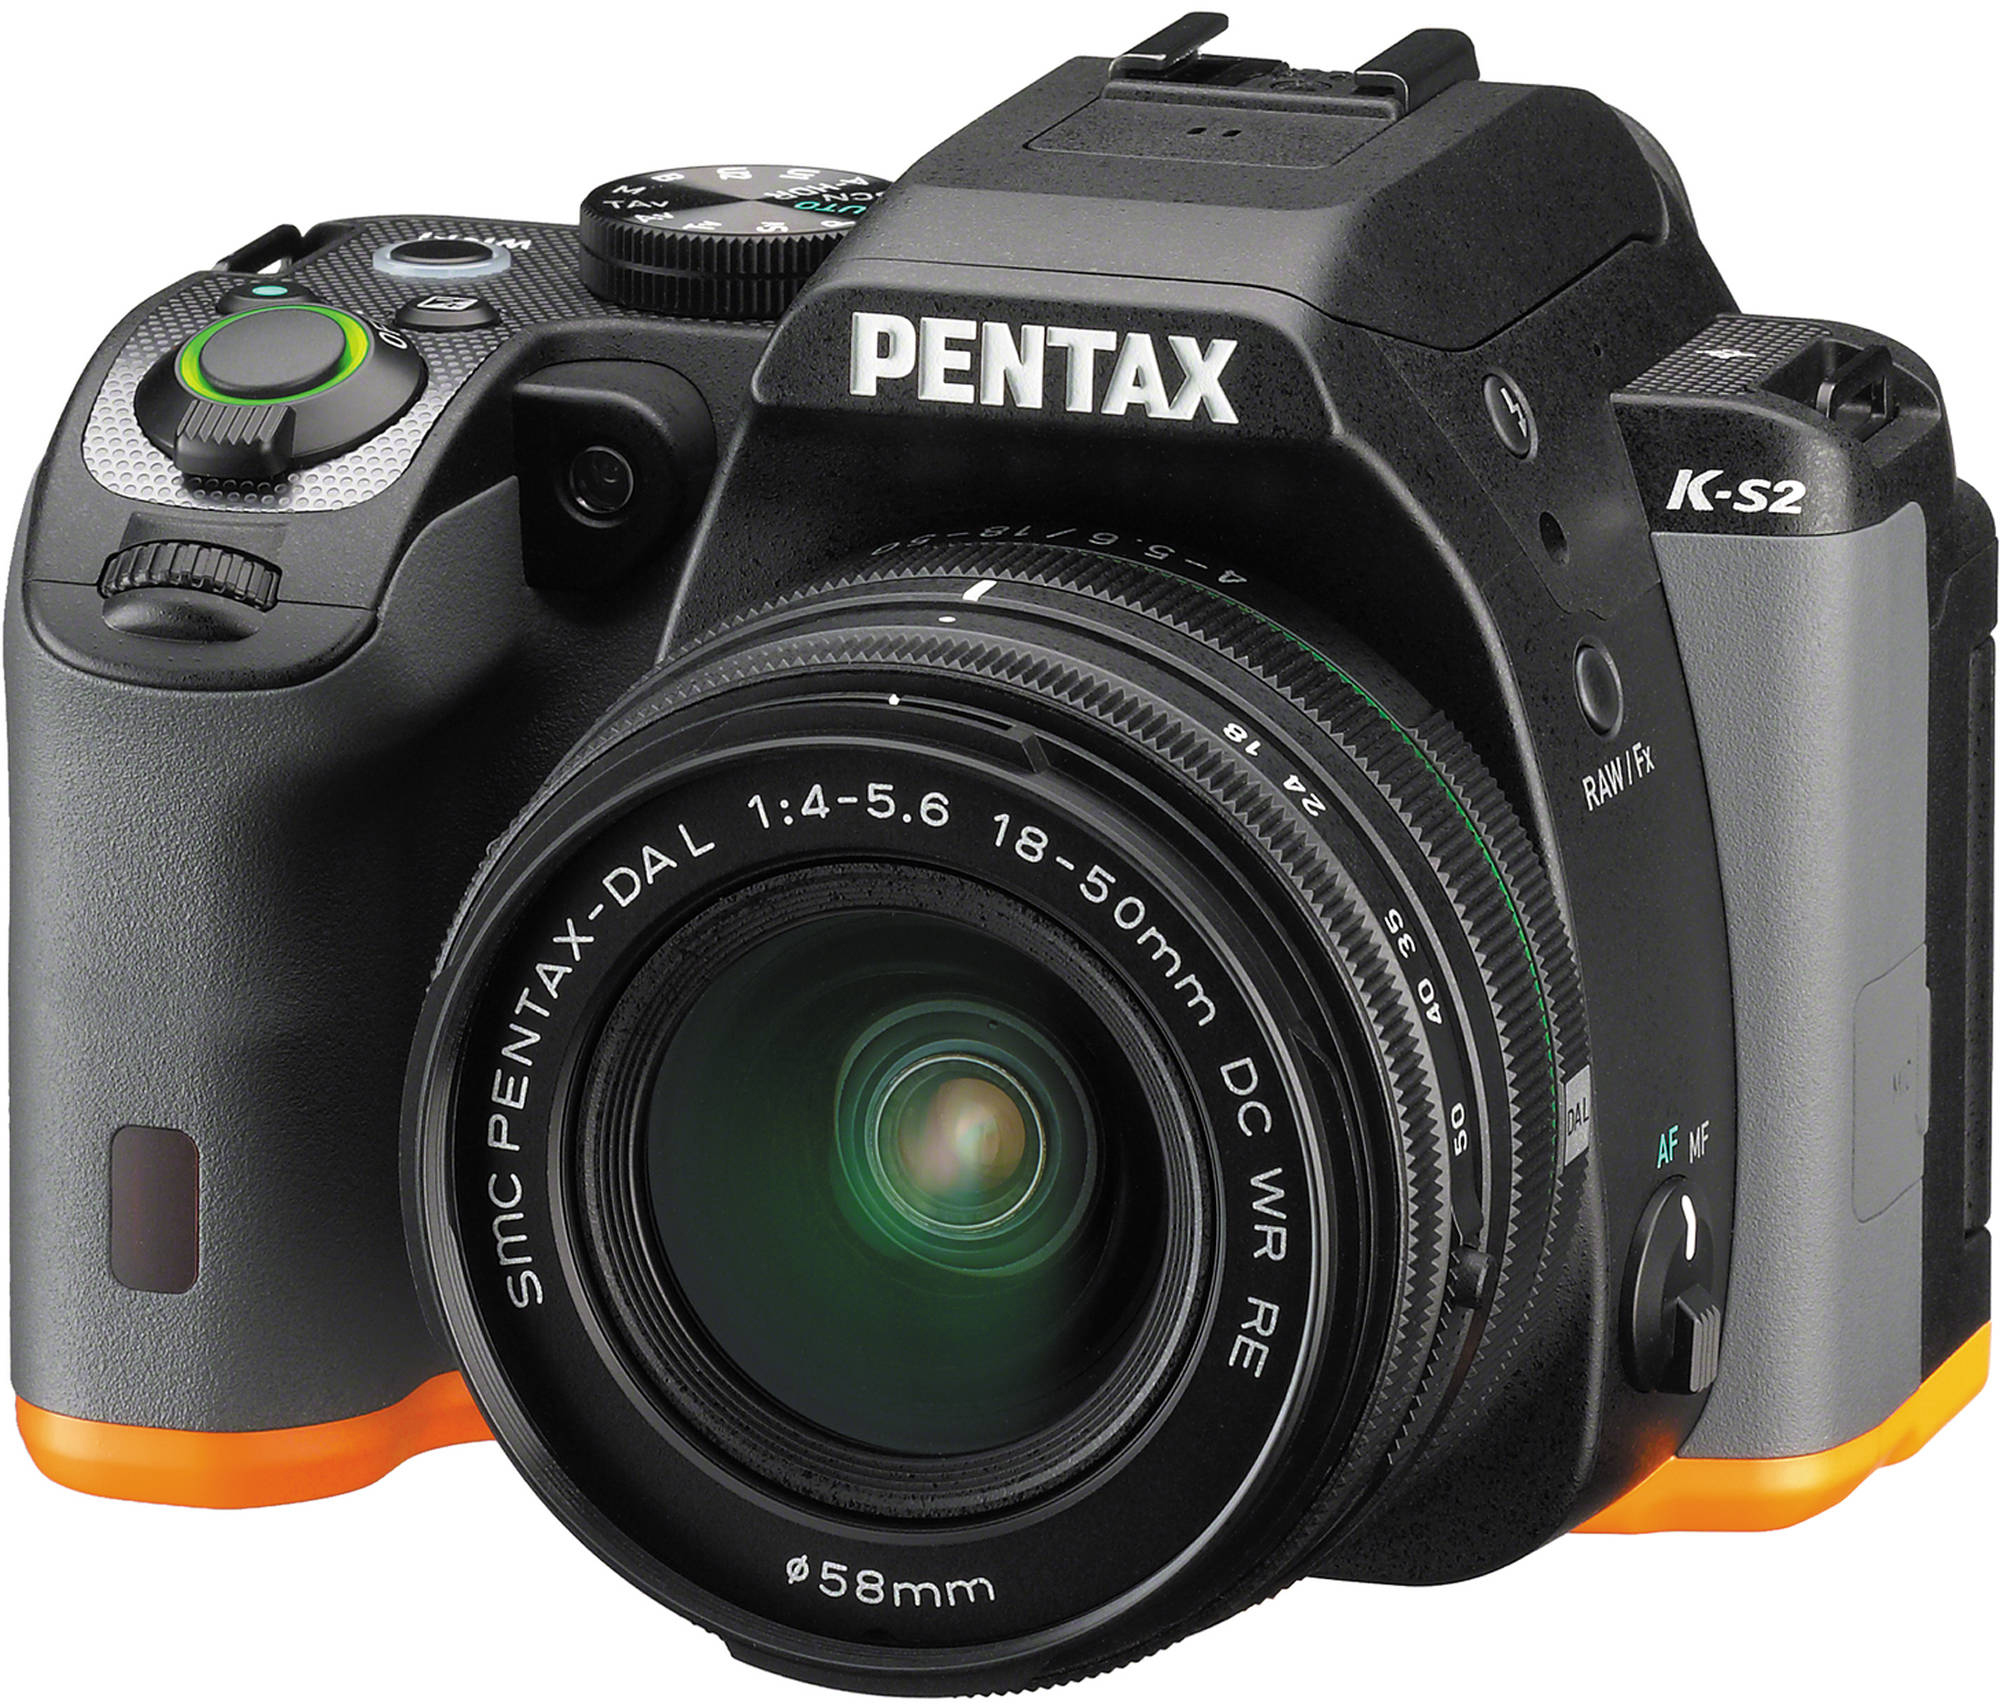 Travel Friendly Camera And Lens Systems Bh Explora Throw Your Ball To Take Panoramic Photos Pentax K S2 Dslr With 18 50mm